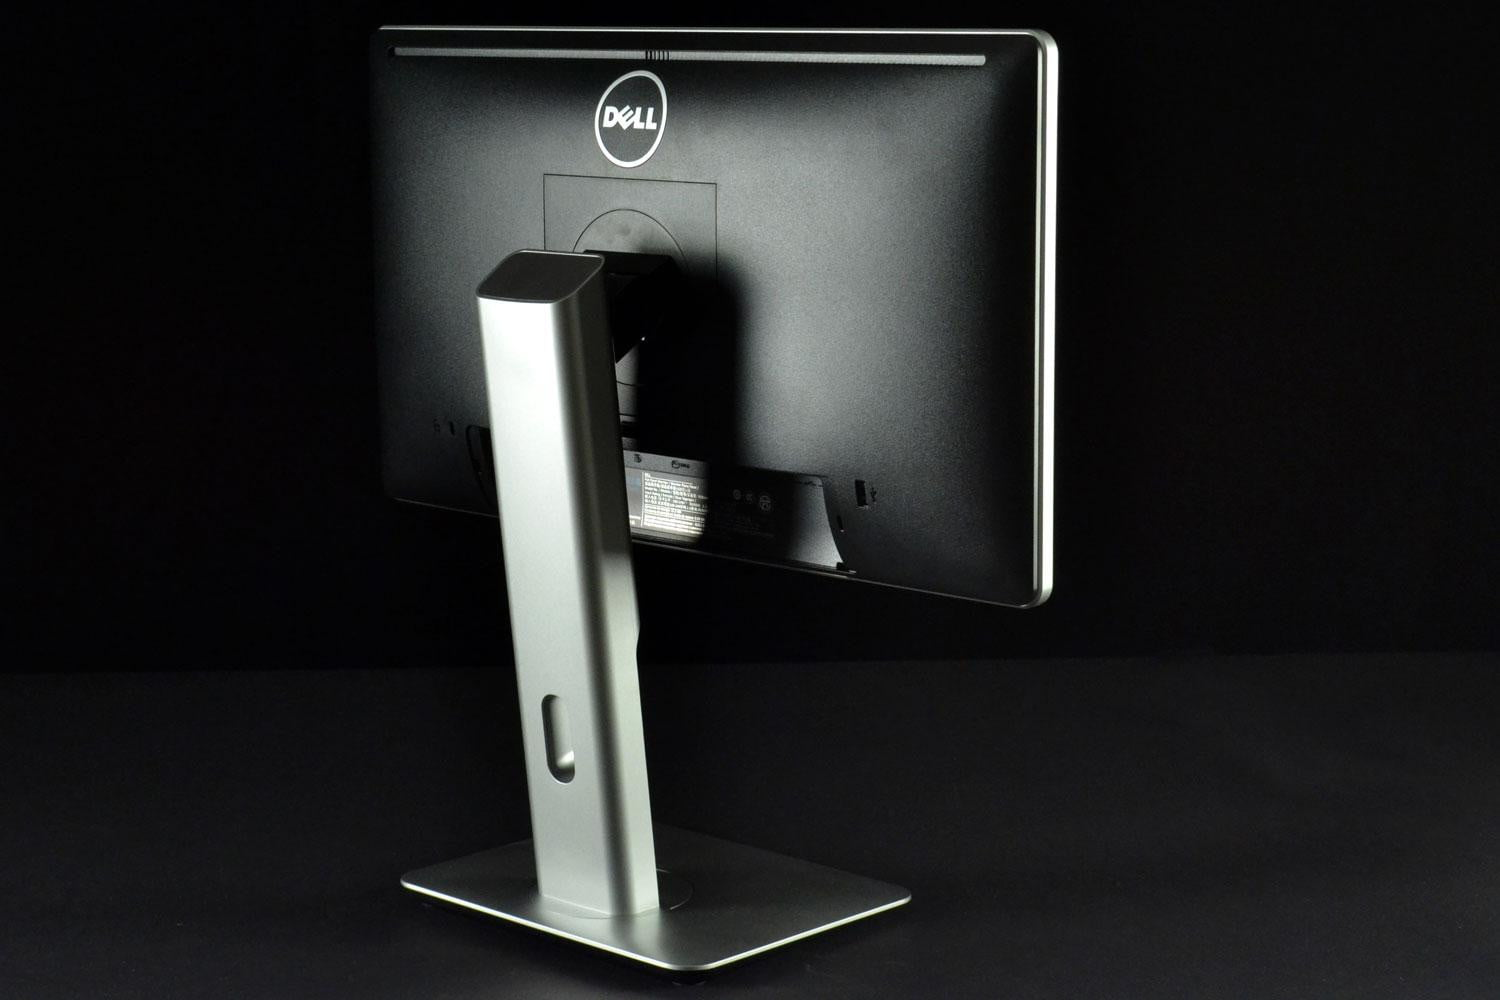 Back To Back Monitor : Dell p ht review digital trends